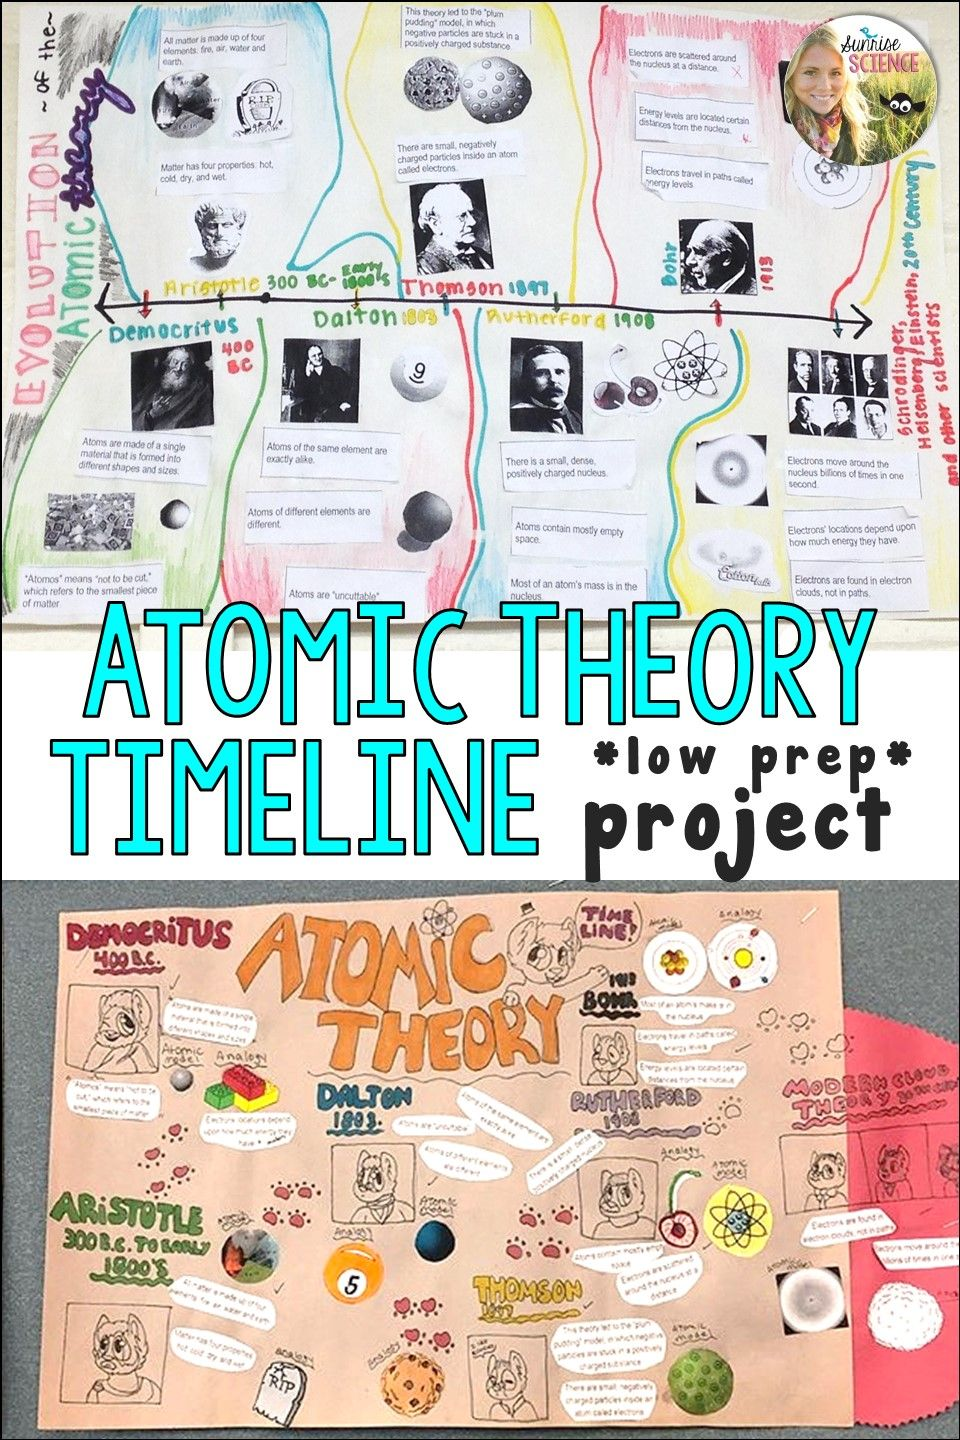 This Is A Low Prep Atomic Theory Project For Your Middle Or High School Students That Gives Them The Atomic Theory Timeline Project Science Teaching Resources